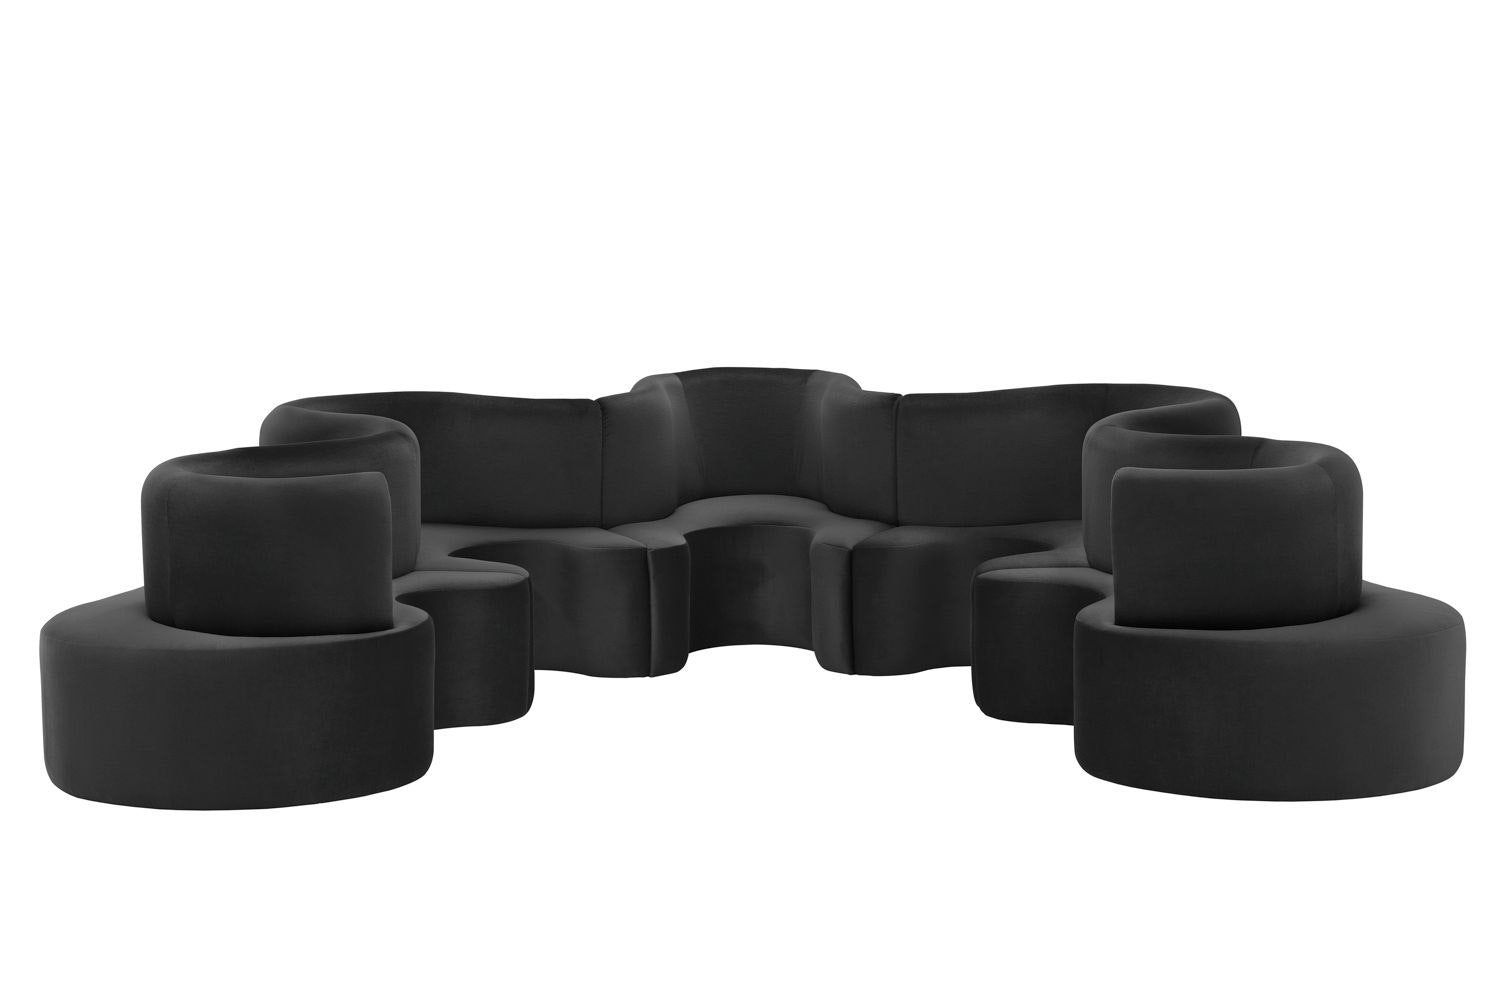 Cloverleaf Sofa - 5 Units by Verner Panton for Verpan